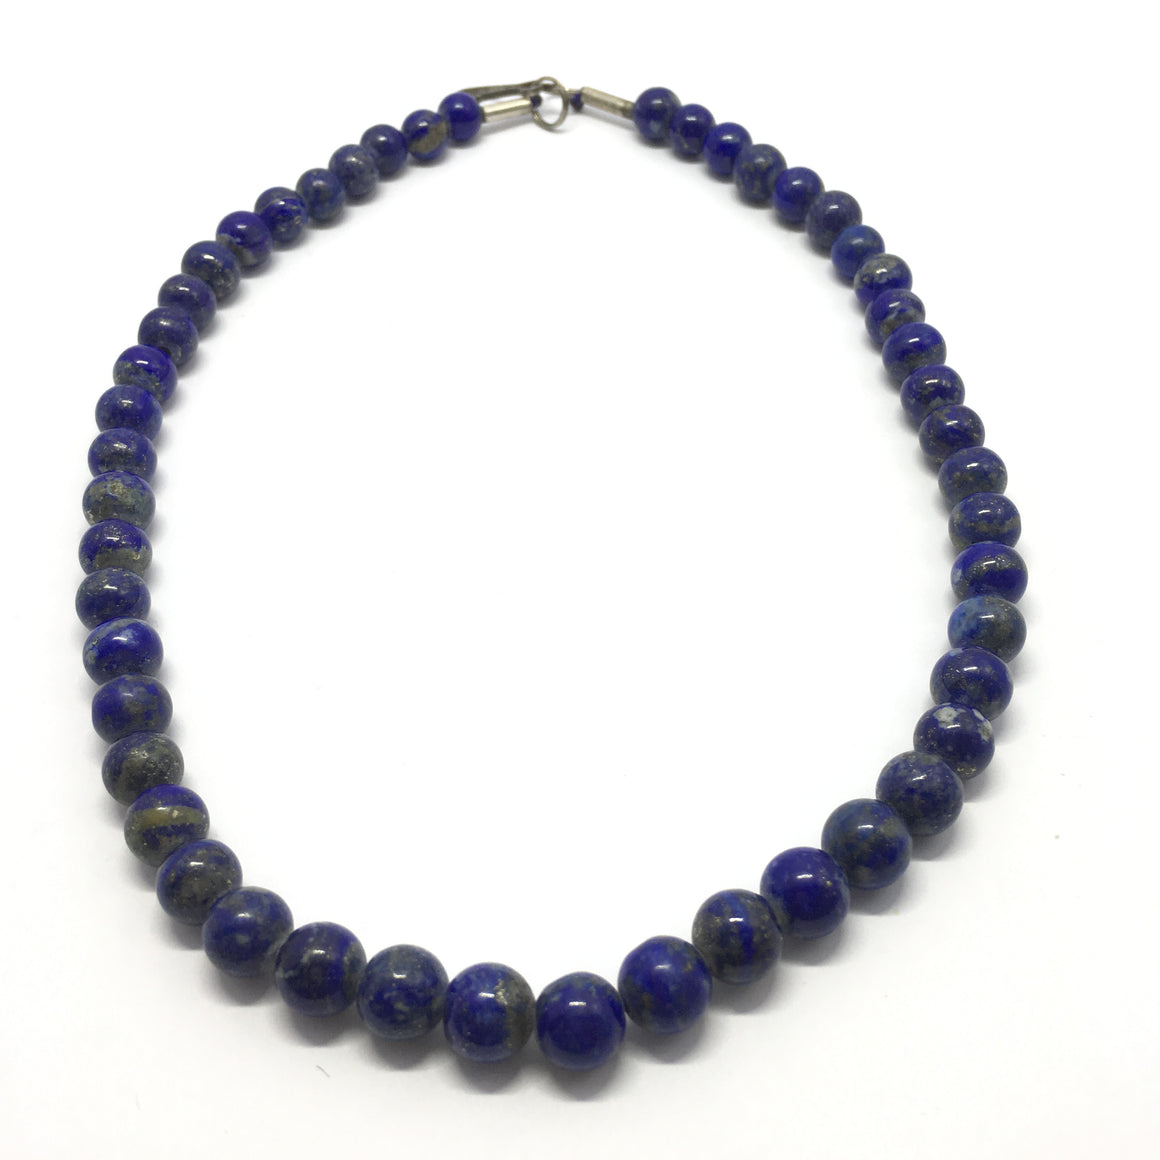 208.5 Carat, 49 Round Beads Lapis Lazuli Necklace With Metal Lock